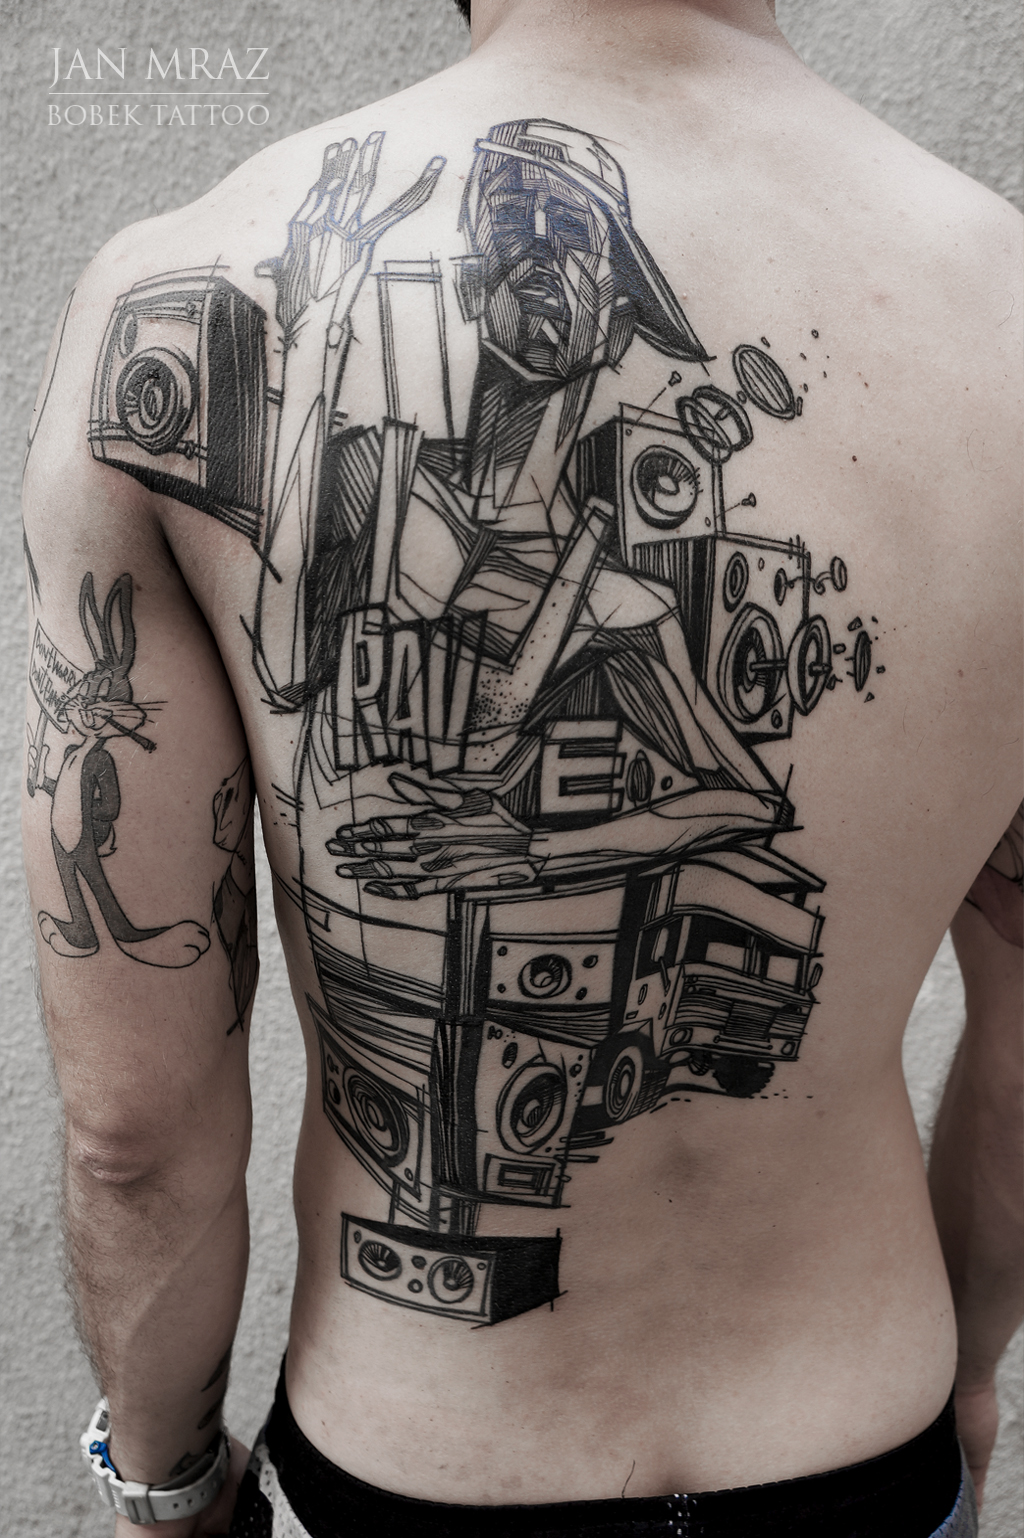 A TATTOO-Rave 1024 ps podpis